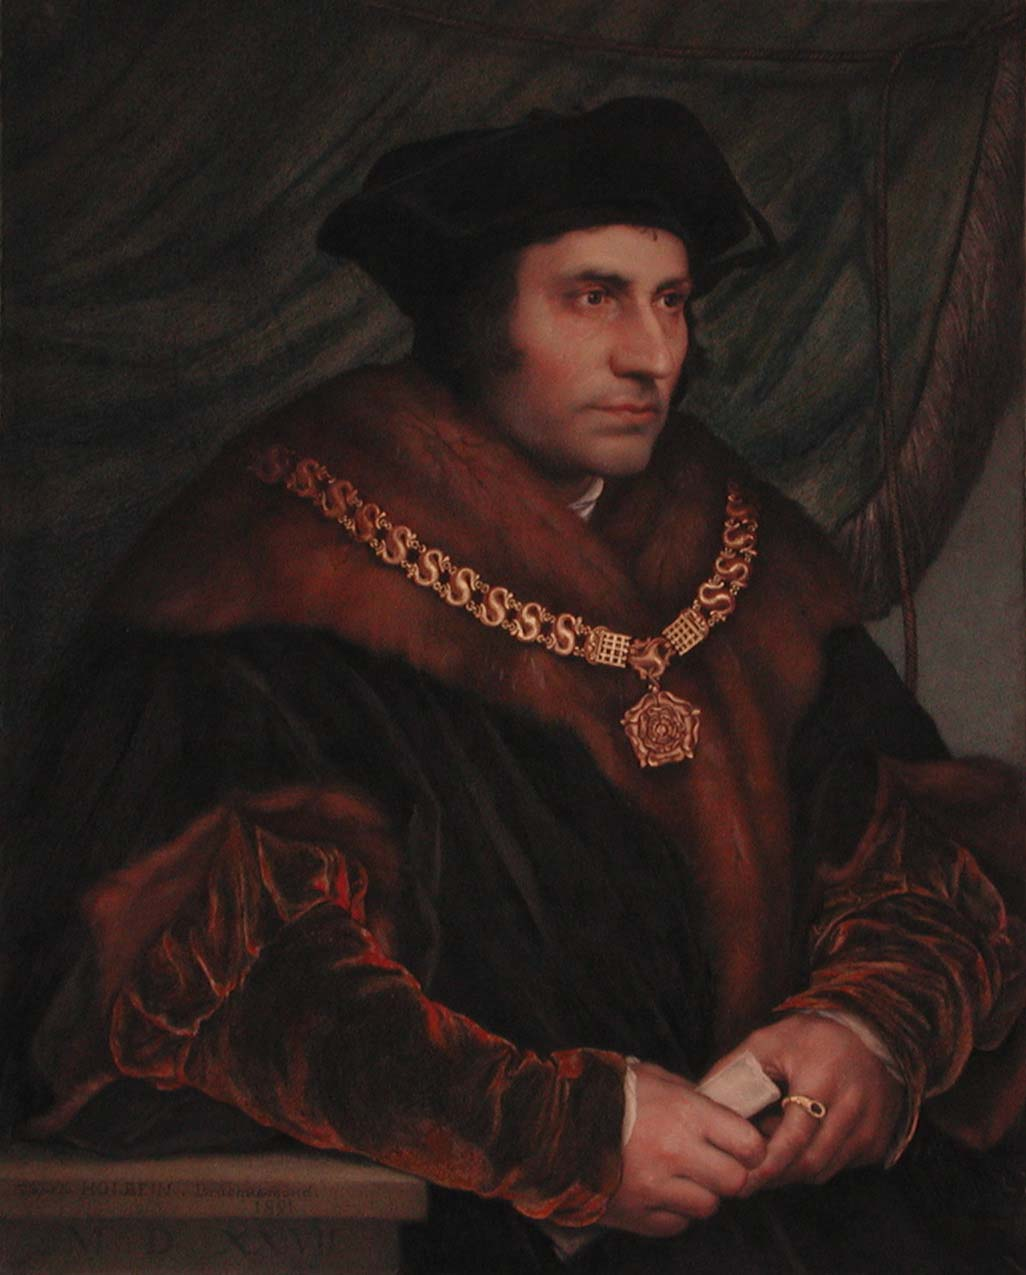 an oil portrait of Thomas More in fur robes, gold chain with Tudor rose pendant and black hat